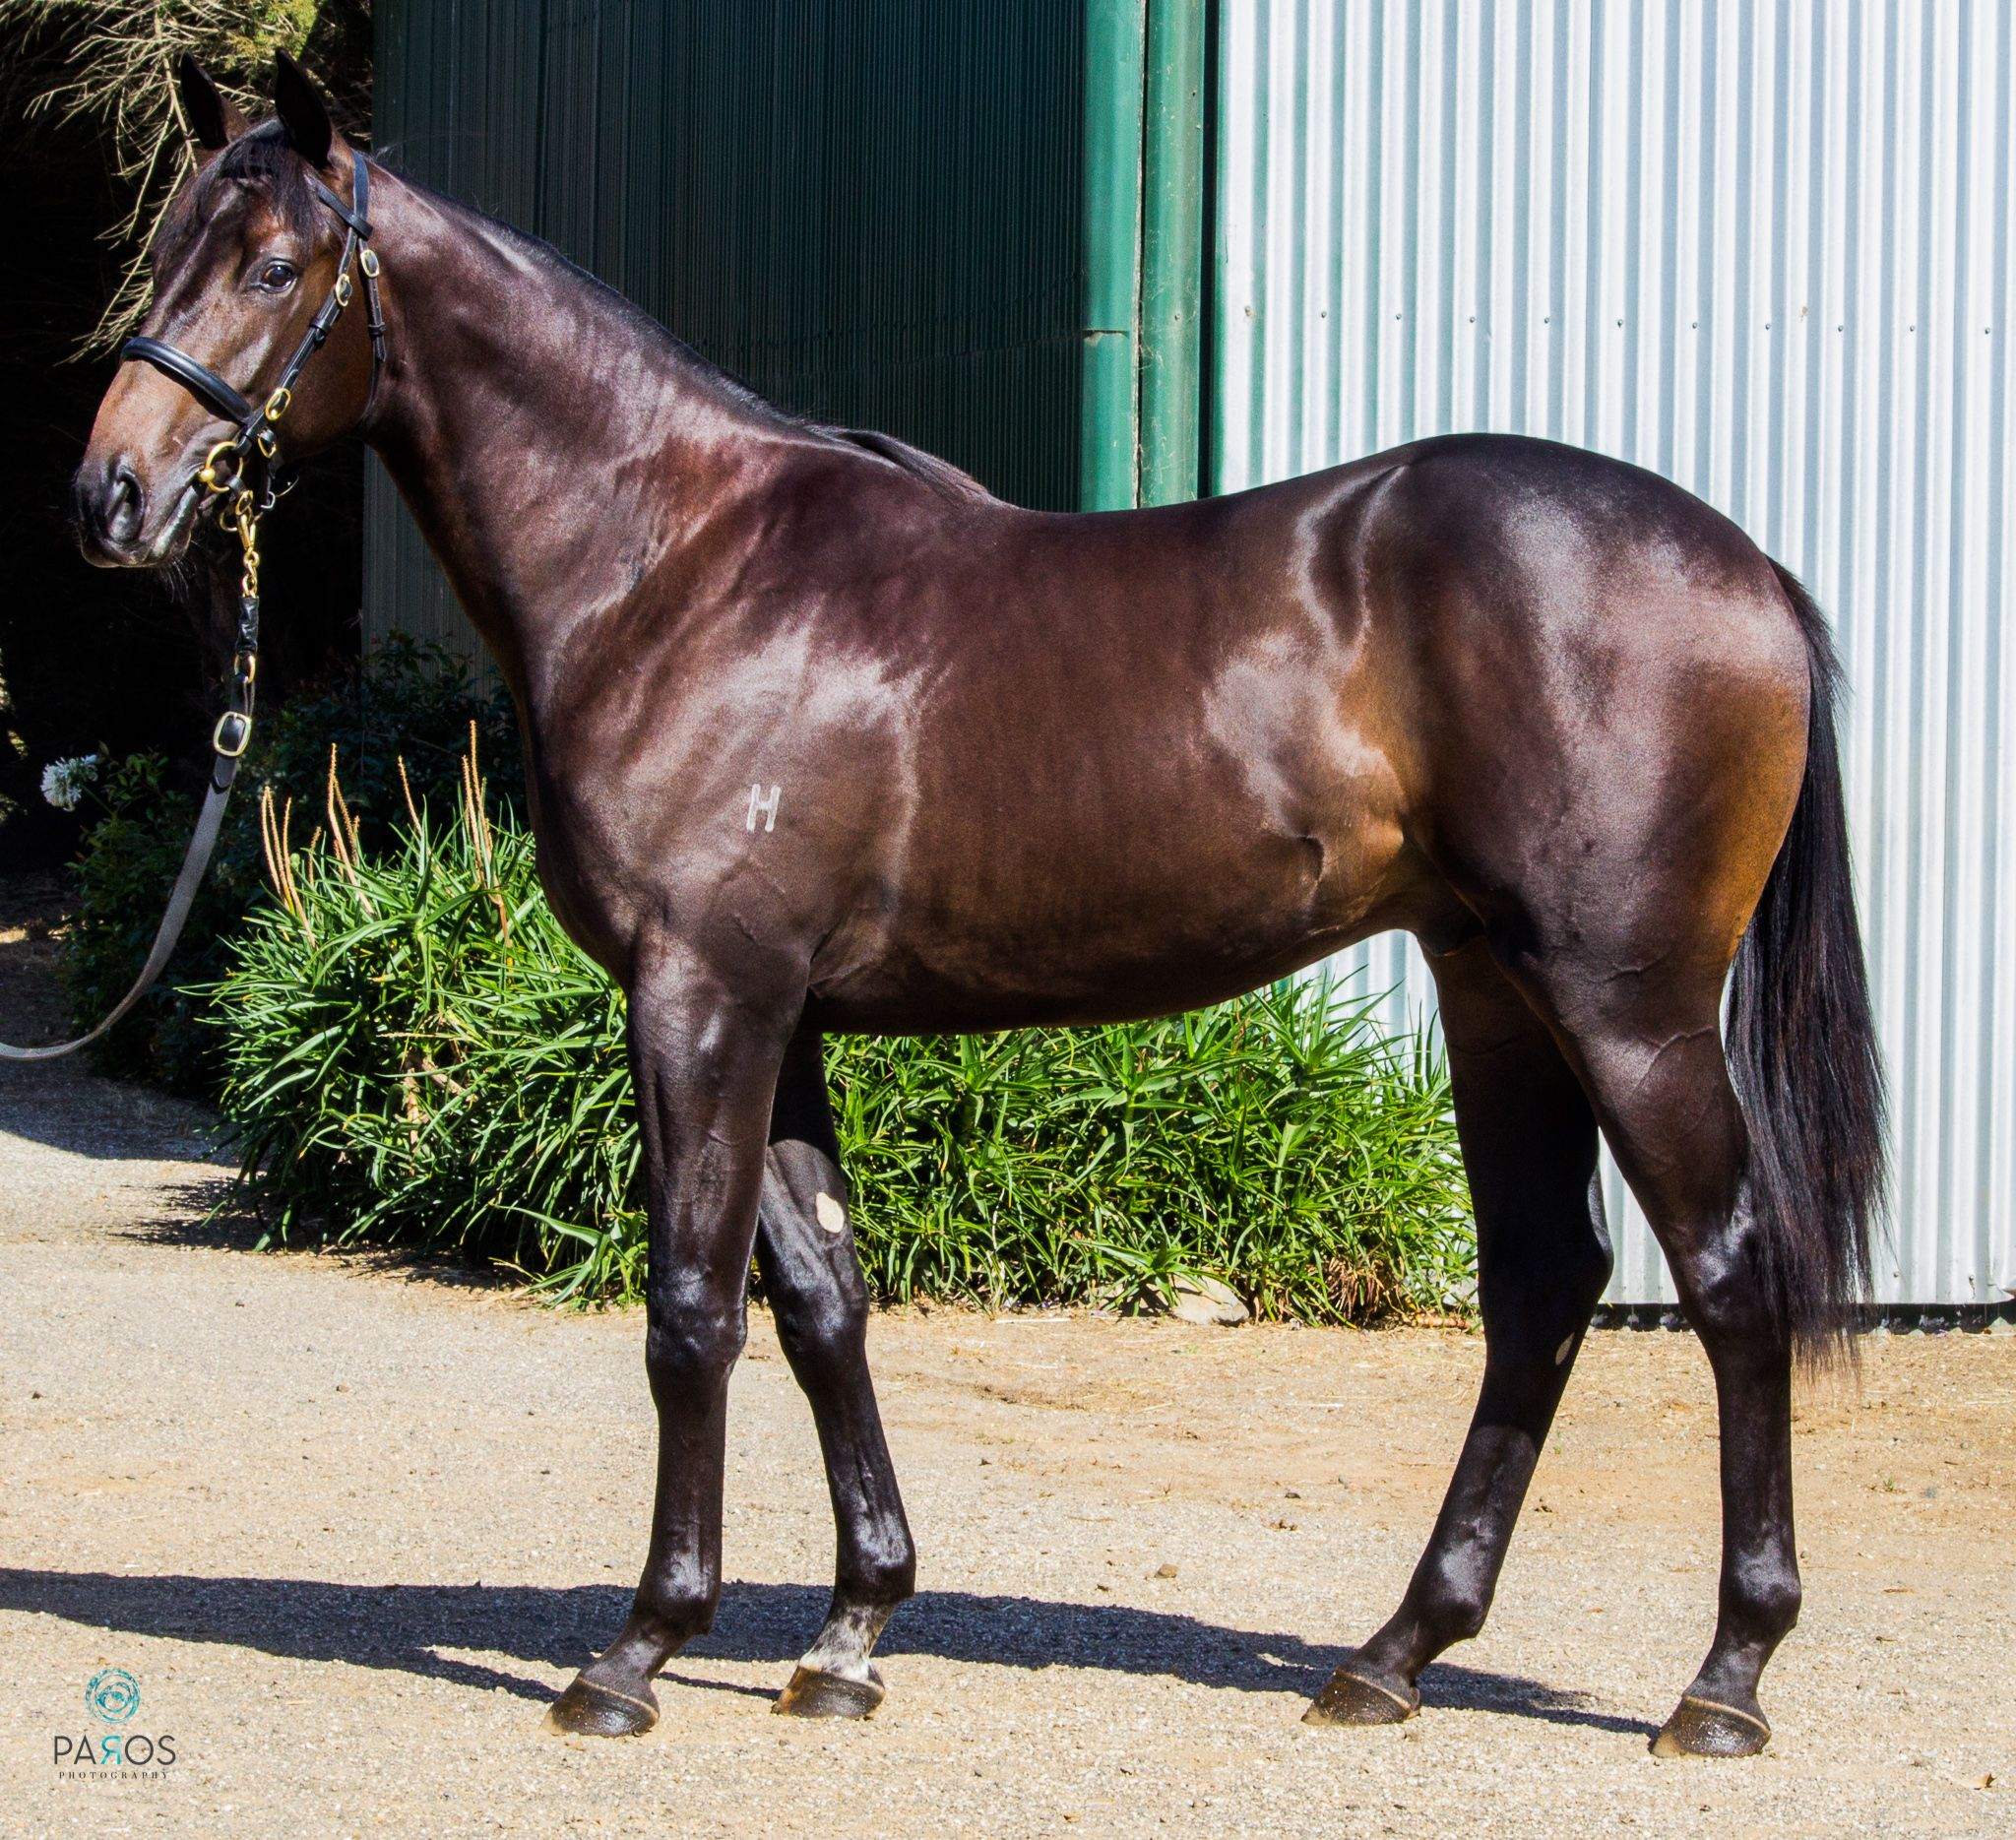 Laino at 2017 Melbourne Premier Yearling Sale